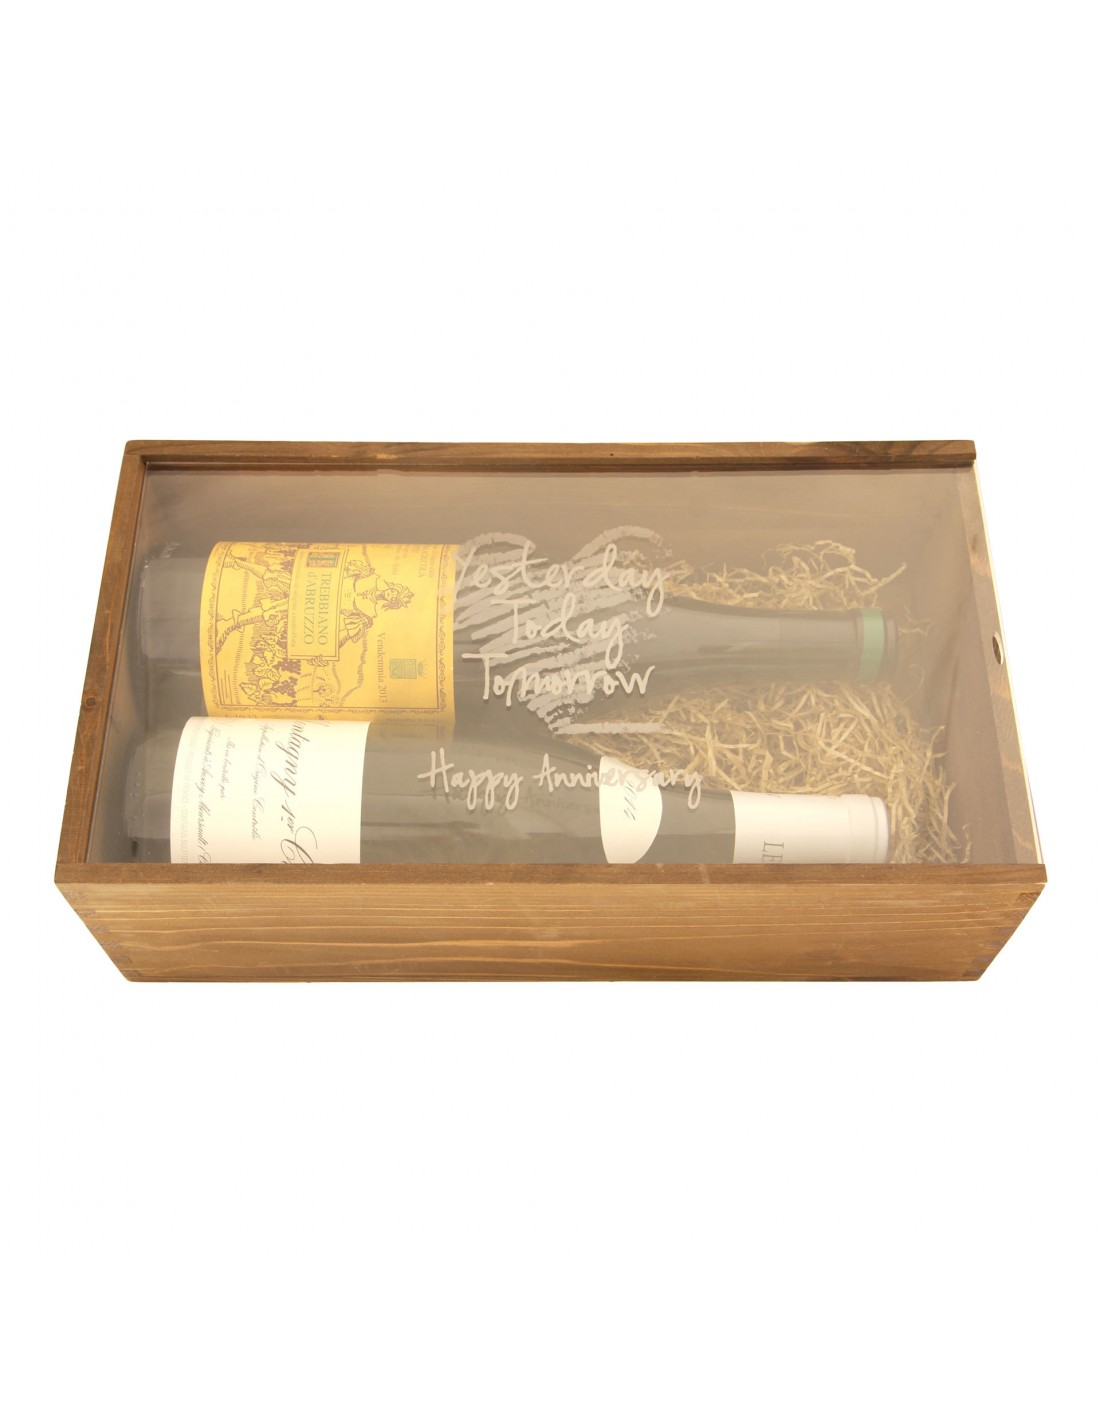 Custom Engraved Wood Wine Box  - Plexiglass Cover 1 or 2 Bottles